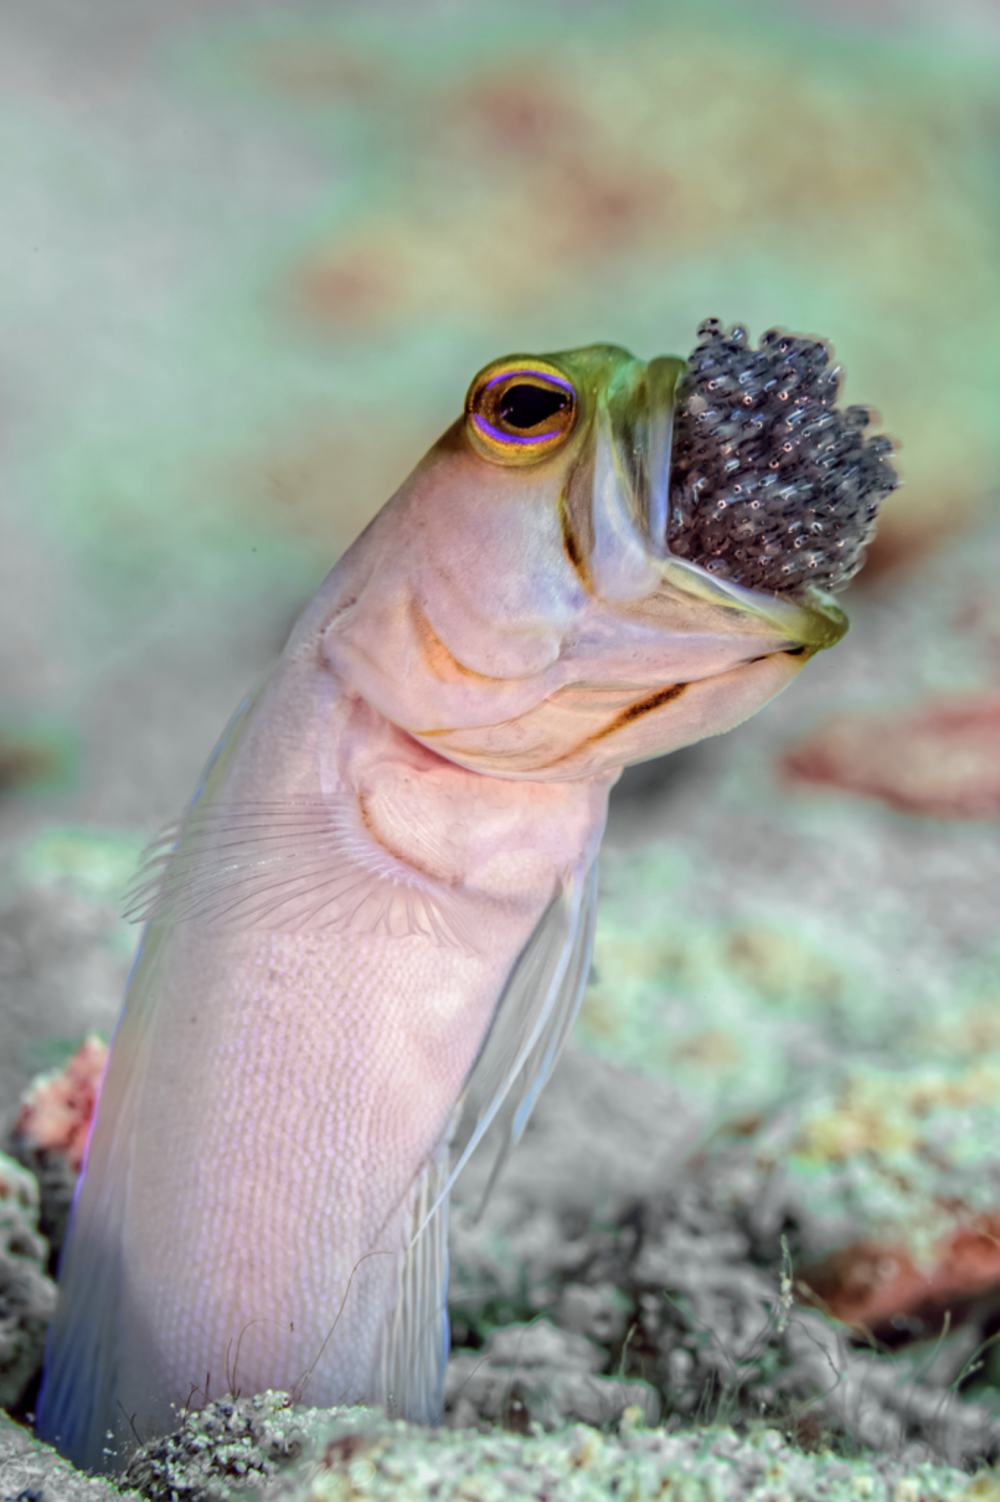 A yellow-headed jawfish with brood